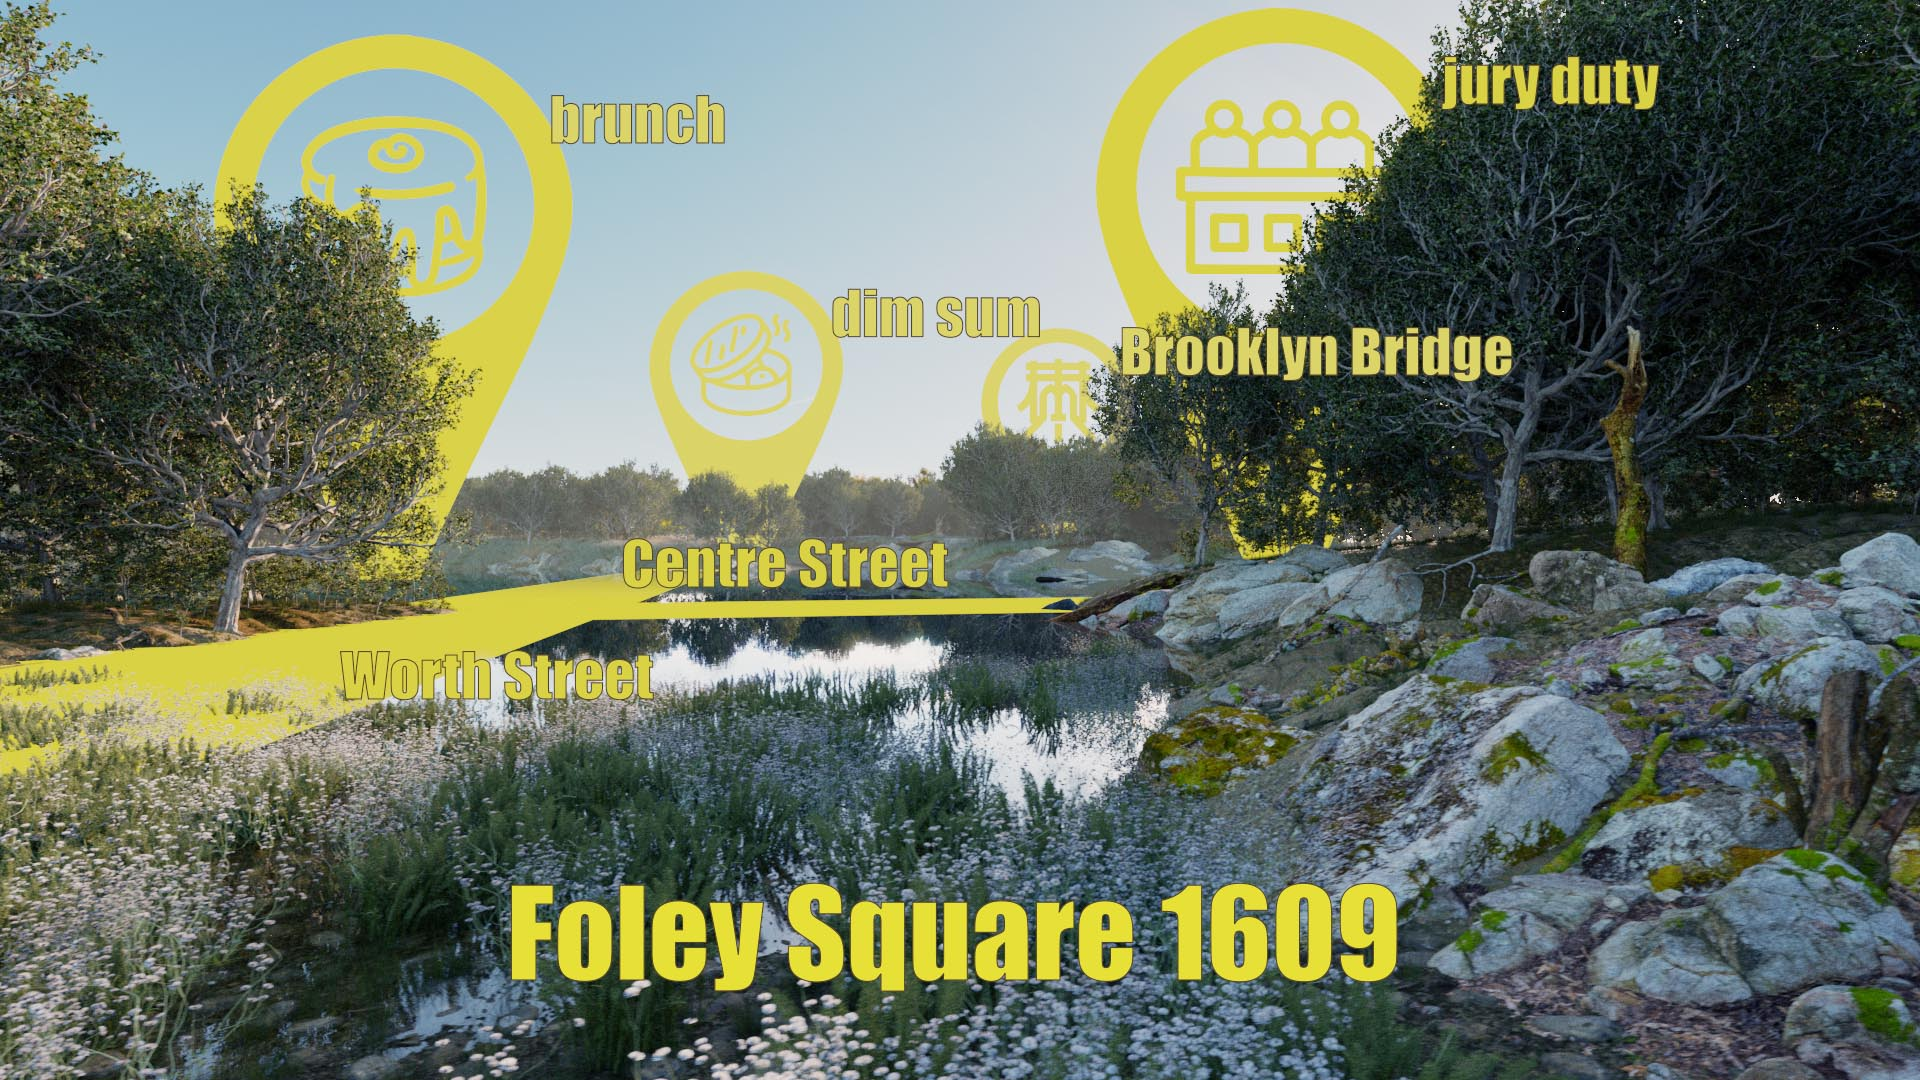 Historic 3d recreation rendering of Collect Pond and Foley Square in New York City circa 1609